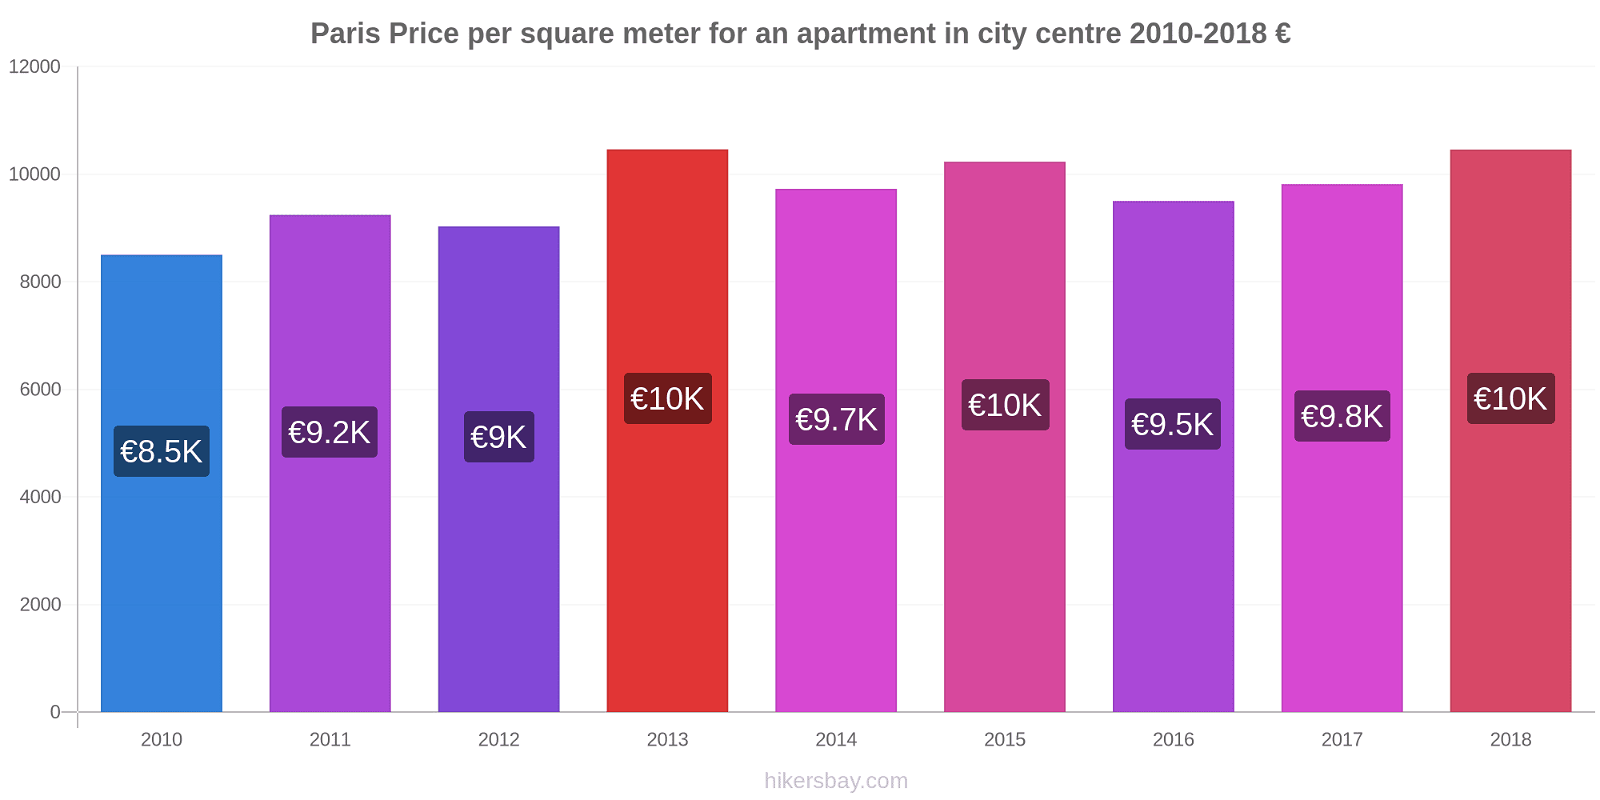 Paris price changes Price per square meter for an apartment in city centre hikersbay.com